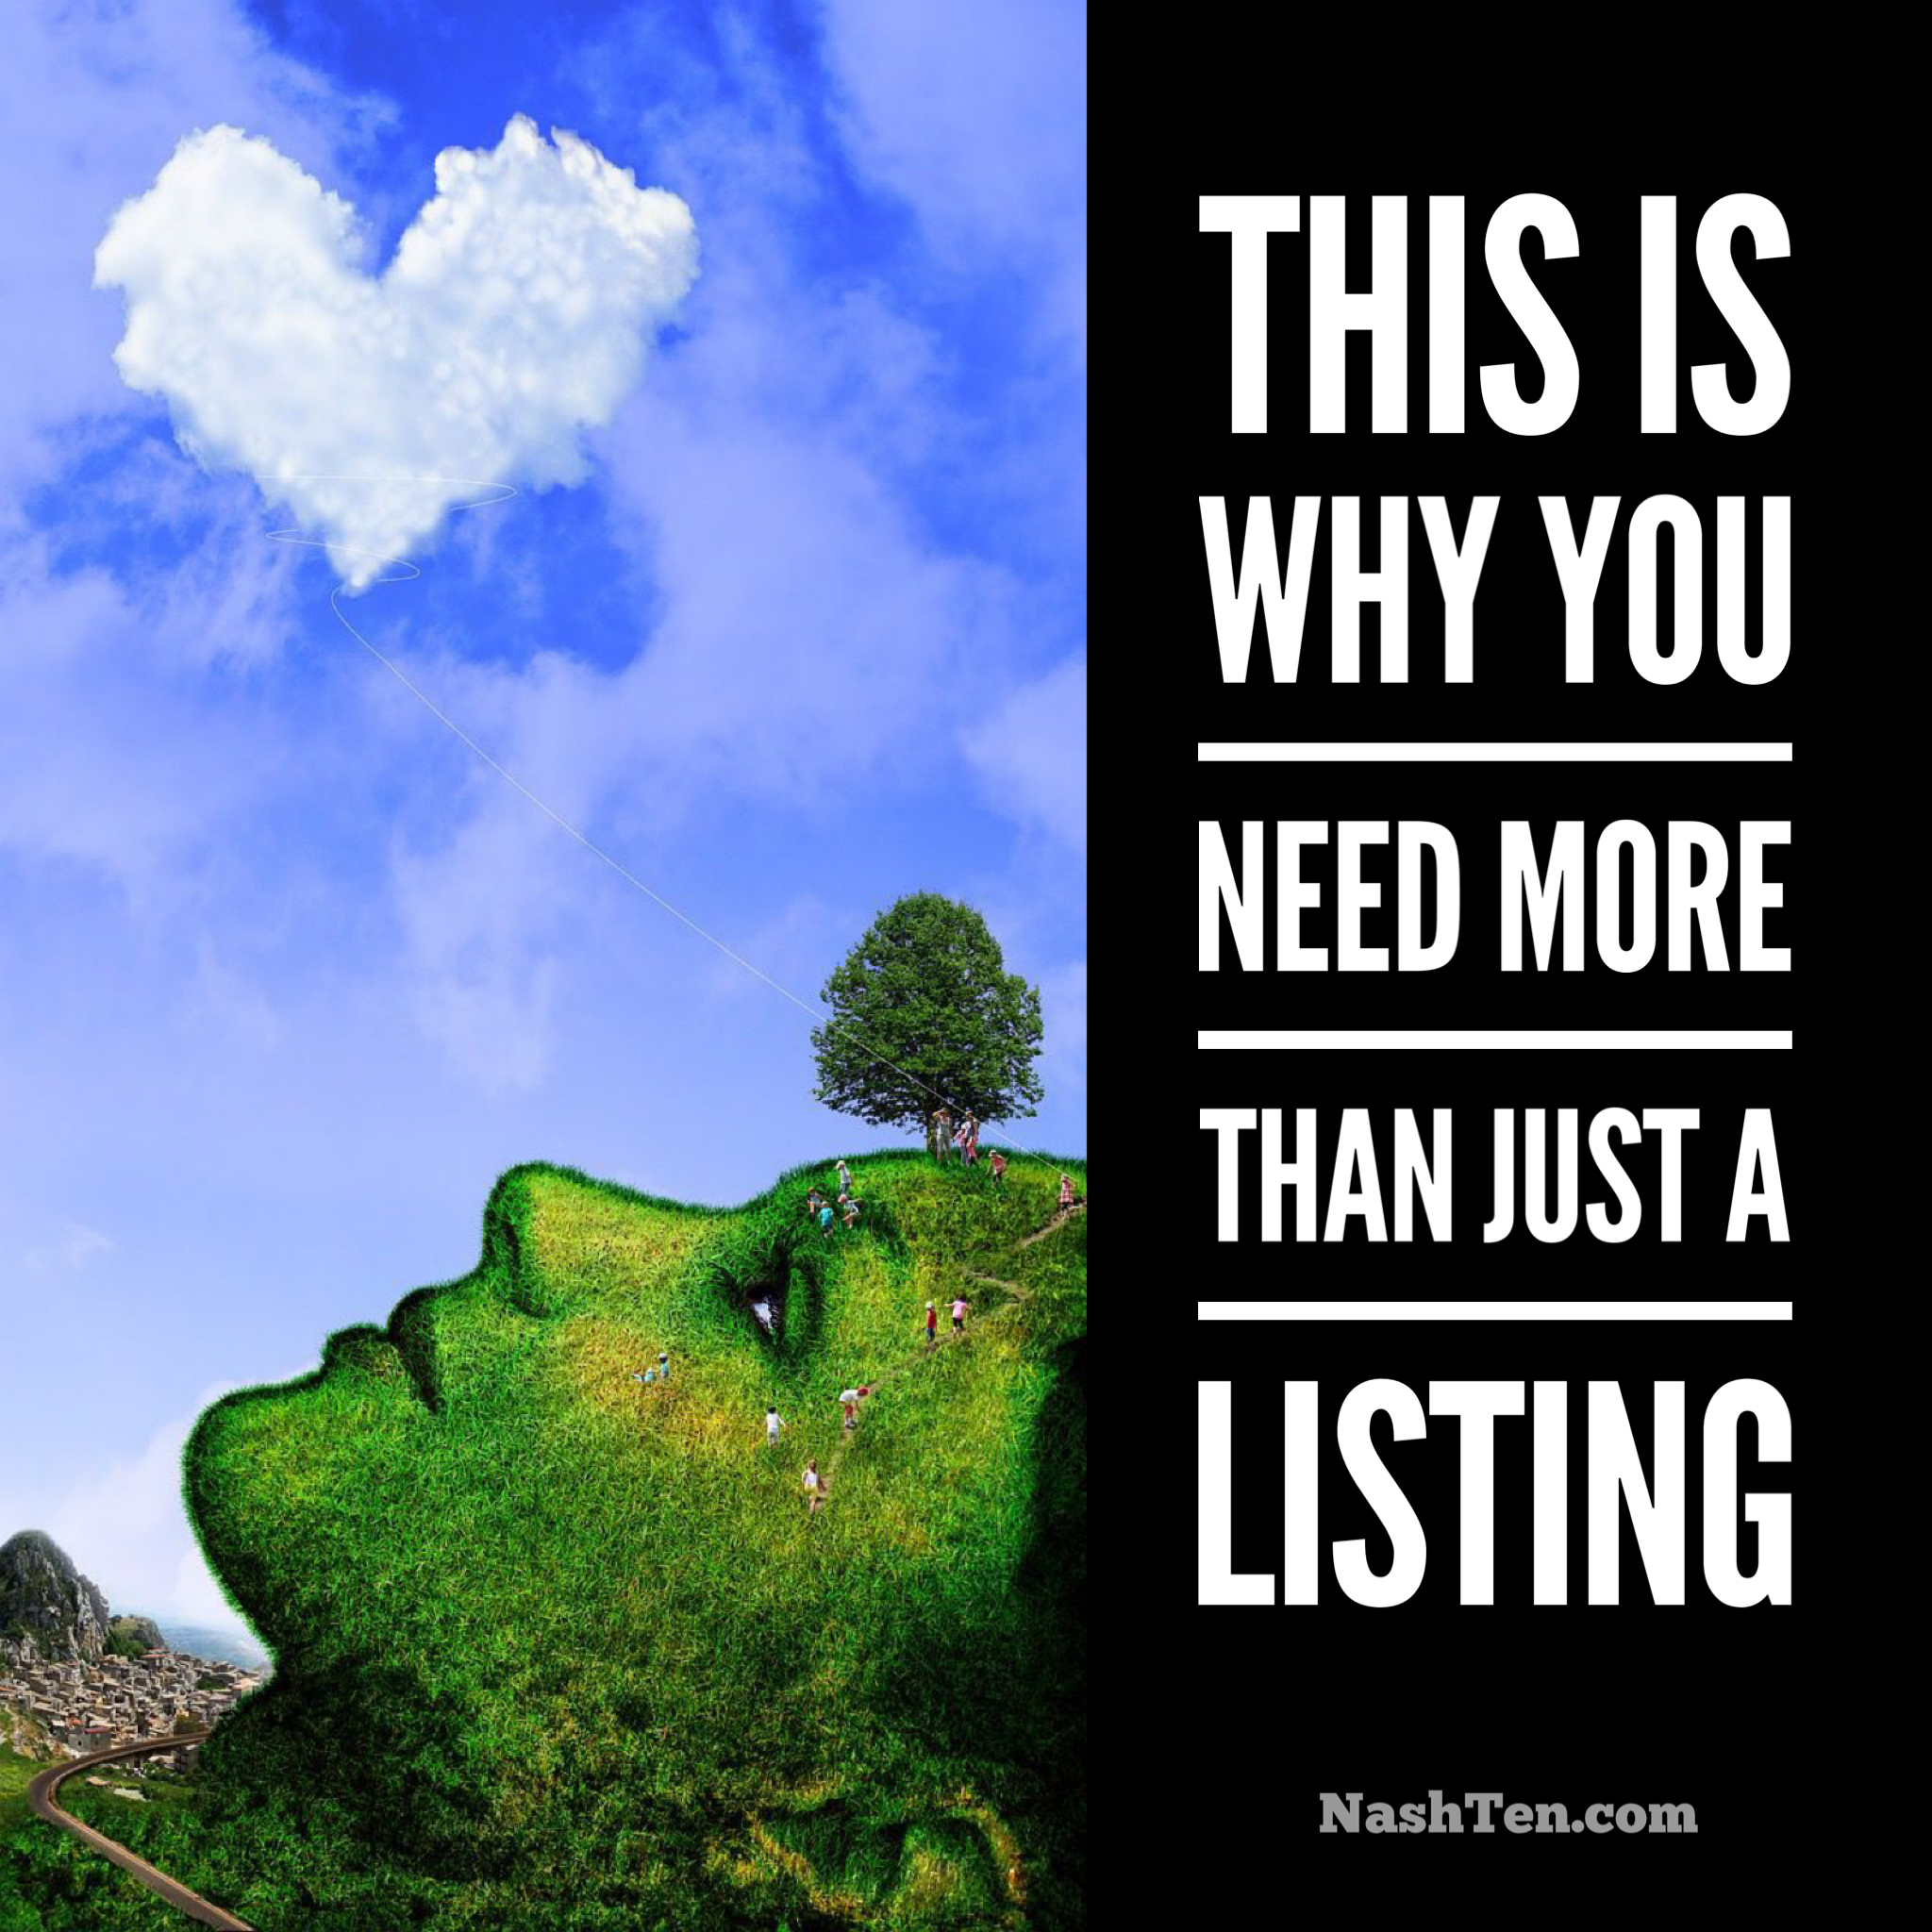 this is why you need more than just a listing